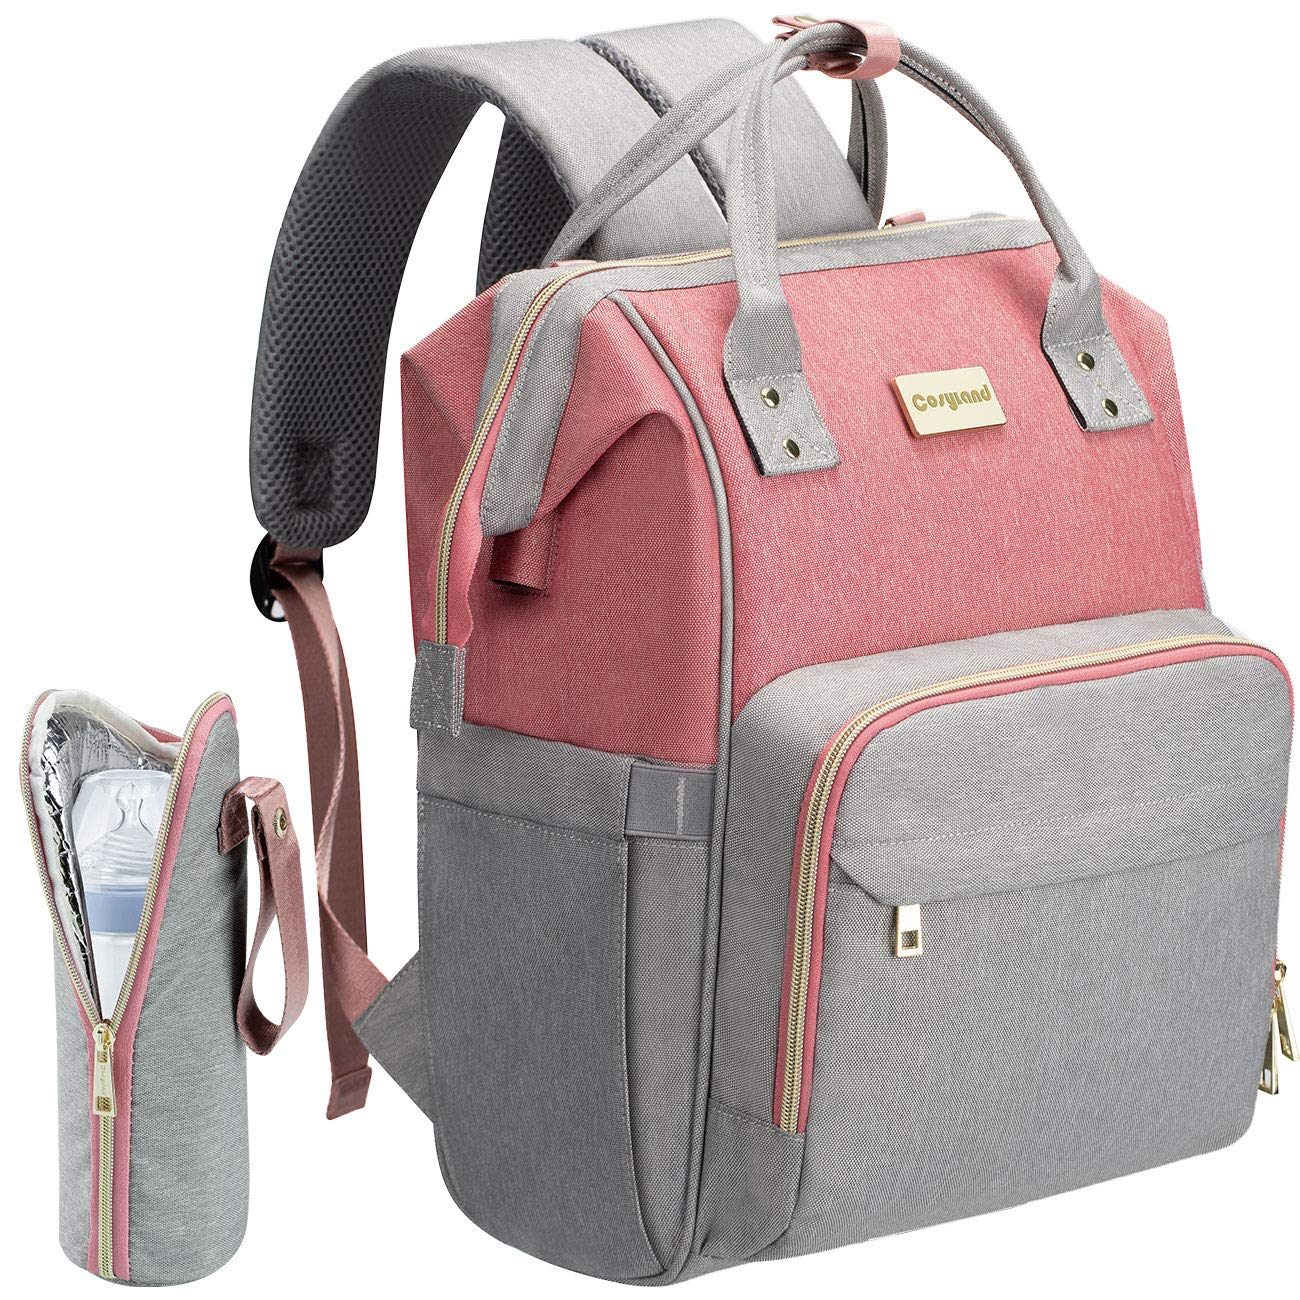 Diaper Bag Backpack, COSYLAND Mom Travel Backpack Nappy Bags Large Capacity Maternity Bag with USB Charge Port Stroller Strap Wide Shoulder Strap Insulated Pockets Pink